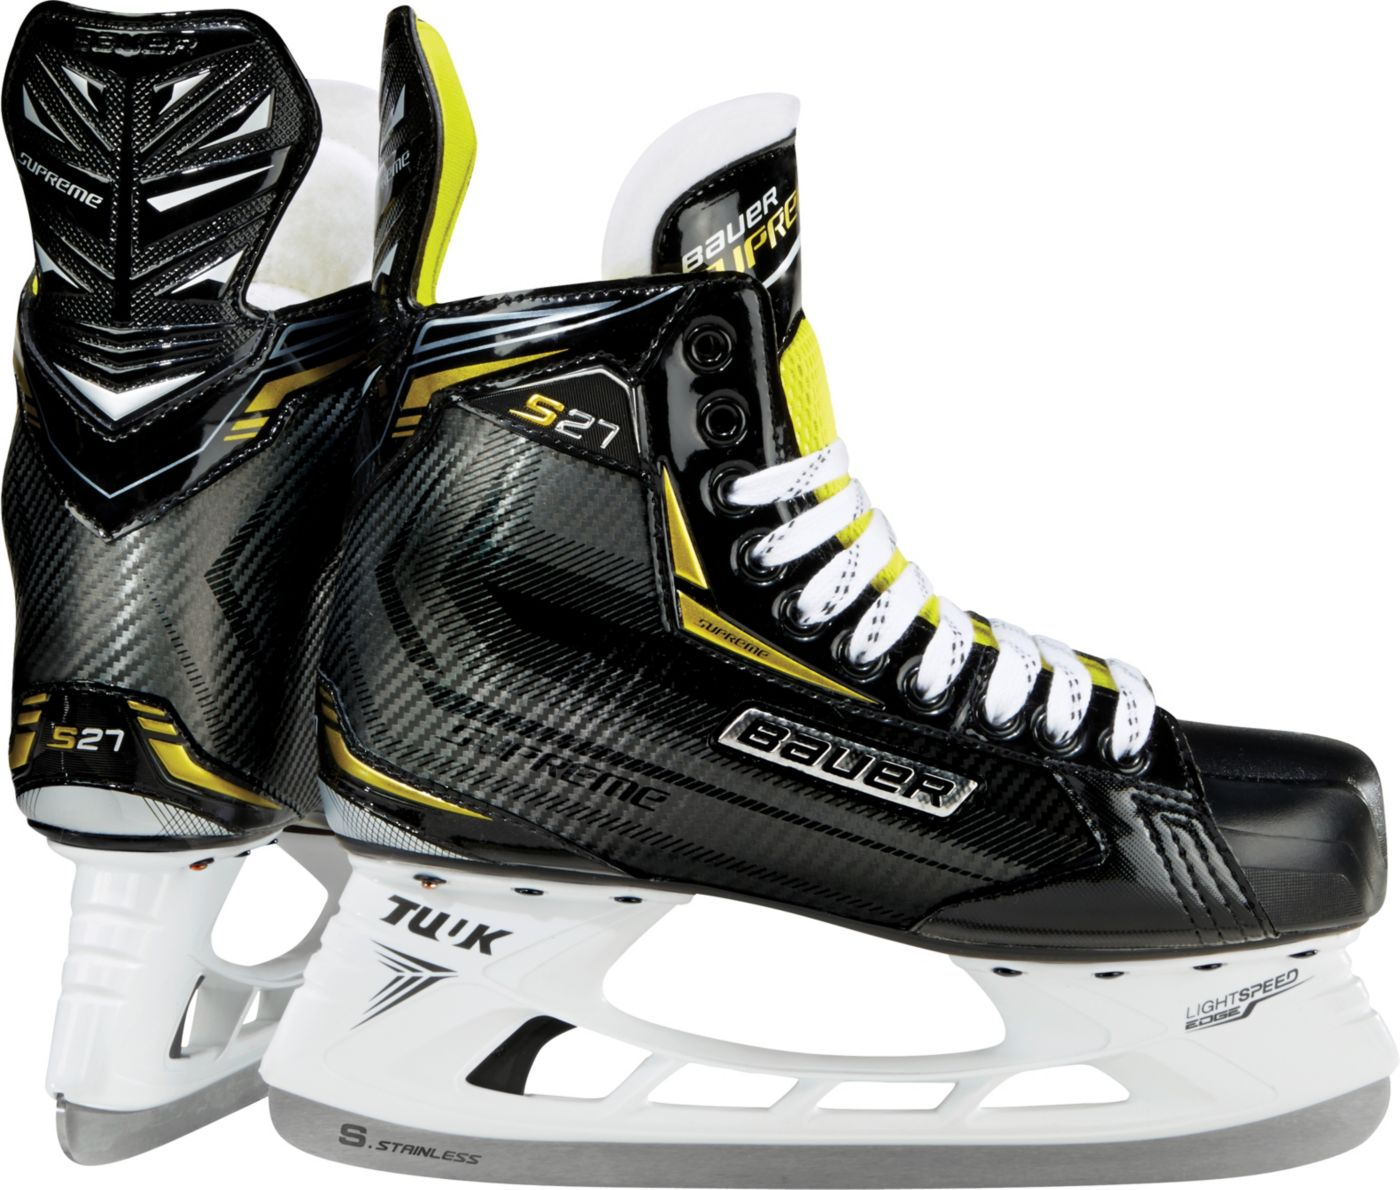 Bauer Youth Supreme S27 Ice Hockey Skates